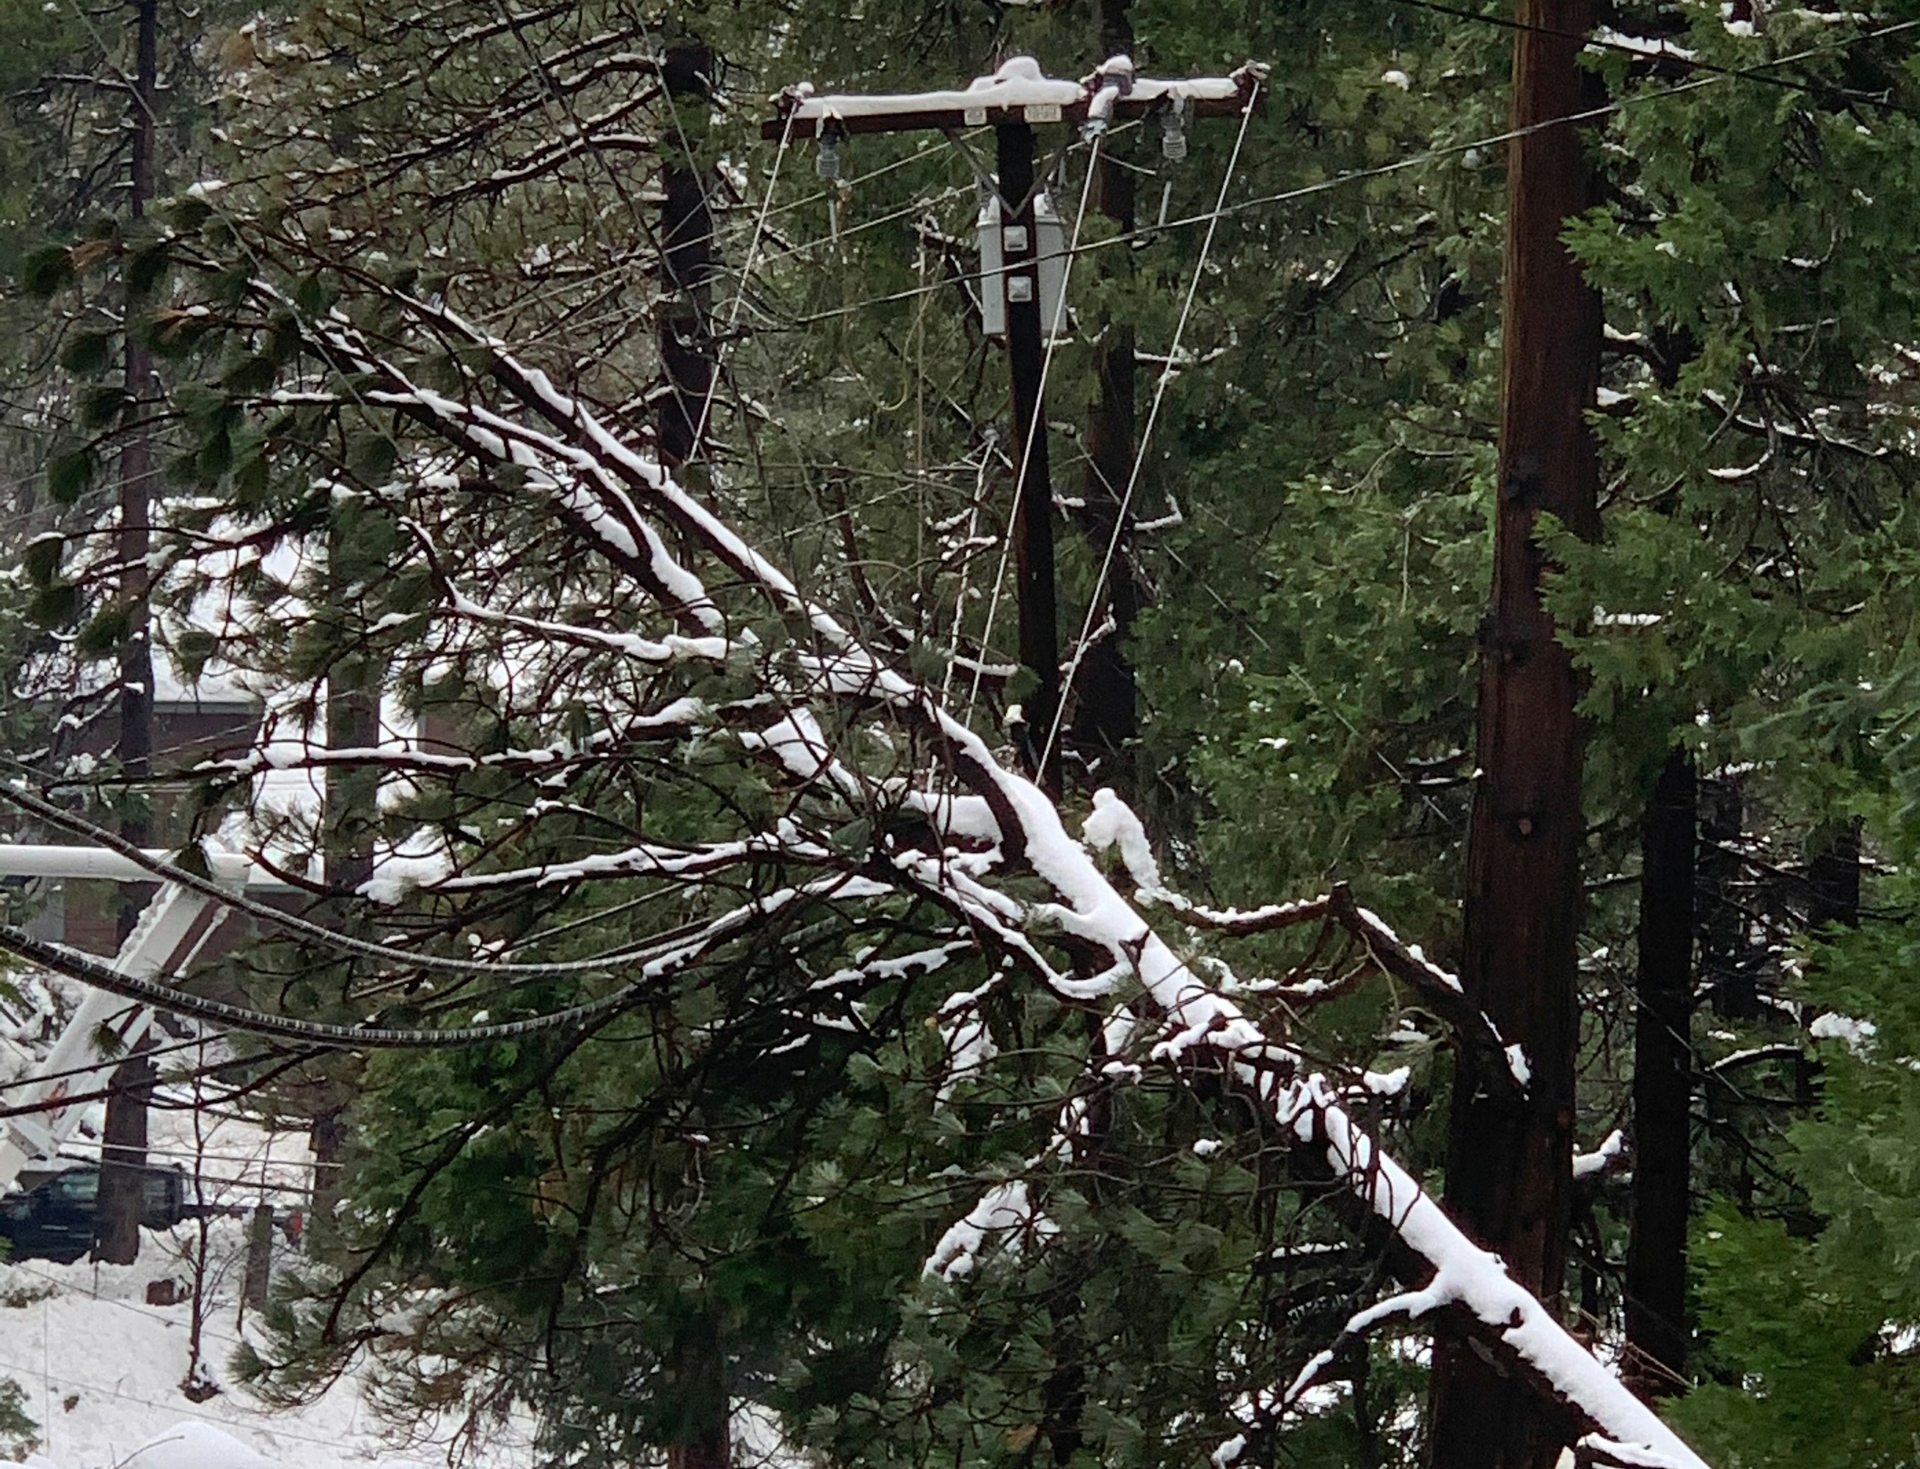 Snow-laden trees fell into power lines causing power outages throughout the Lake Arrowhead area after the Thanksgiving snowstorm.